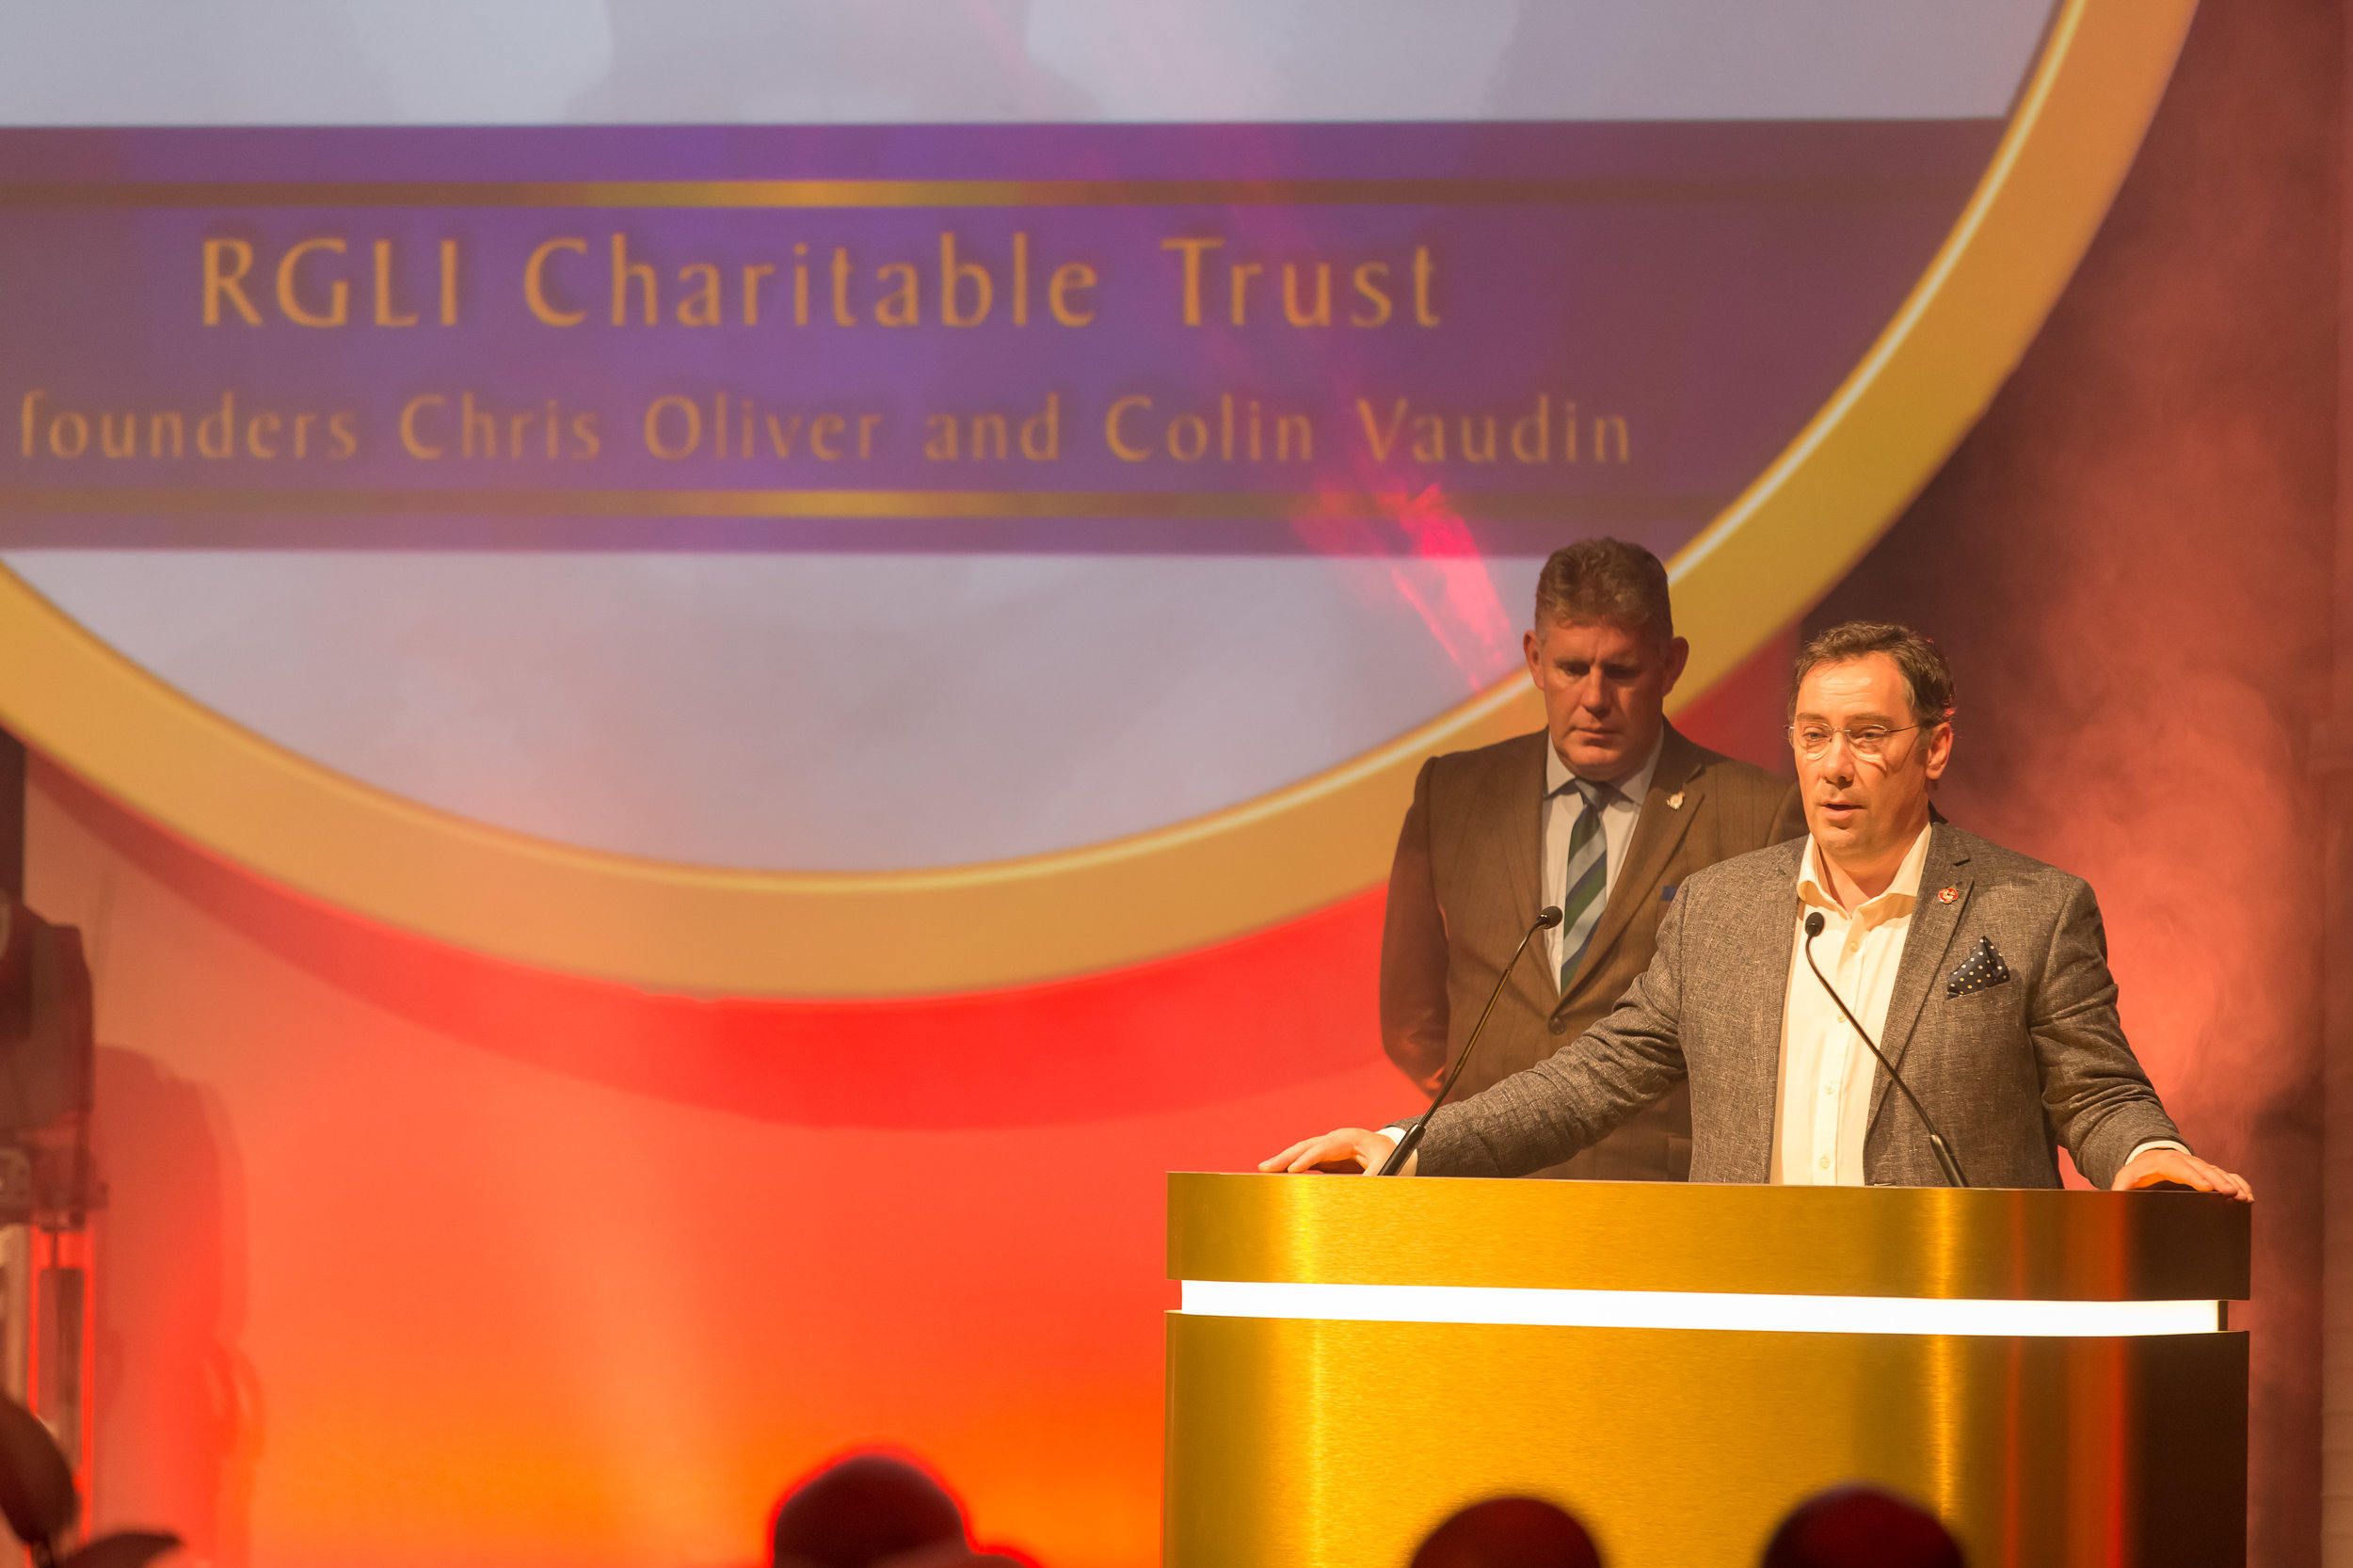 The Special Recognition Award was won by the RGLI Trust Founders Chris Oliver and Colin Vaudin